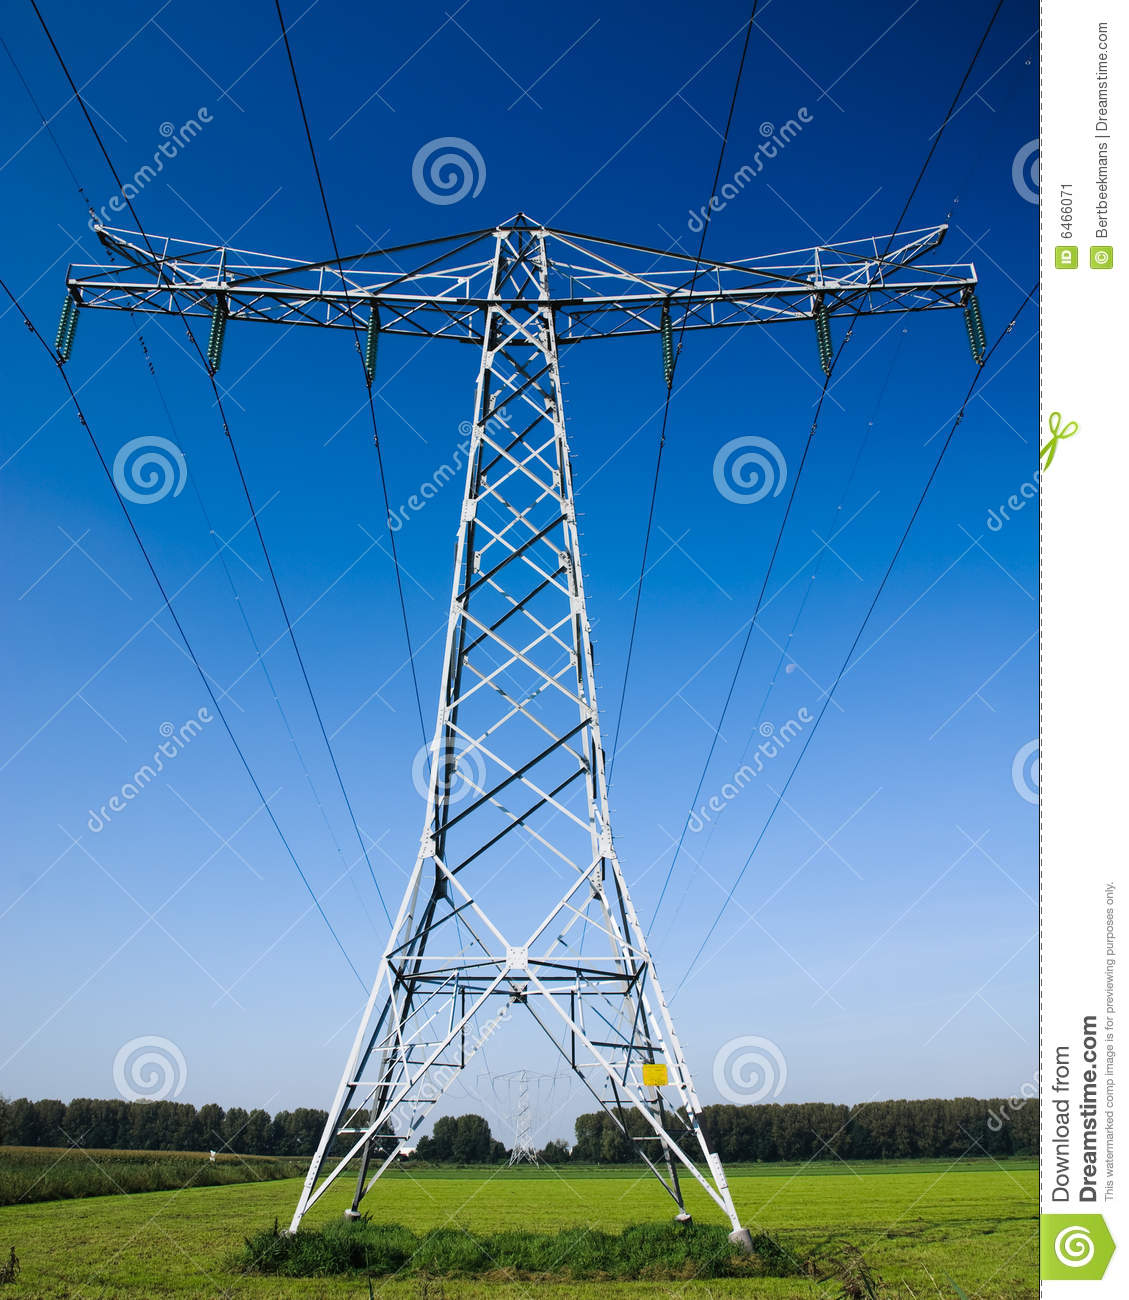 Industrial high voltage power line